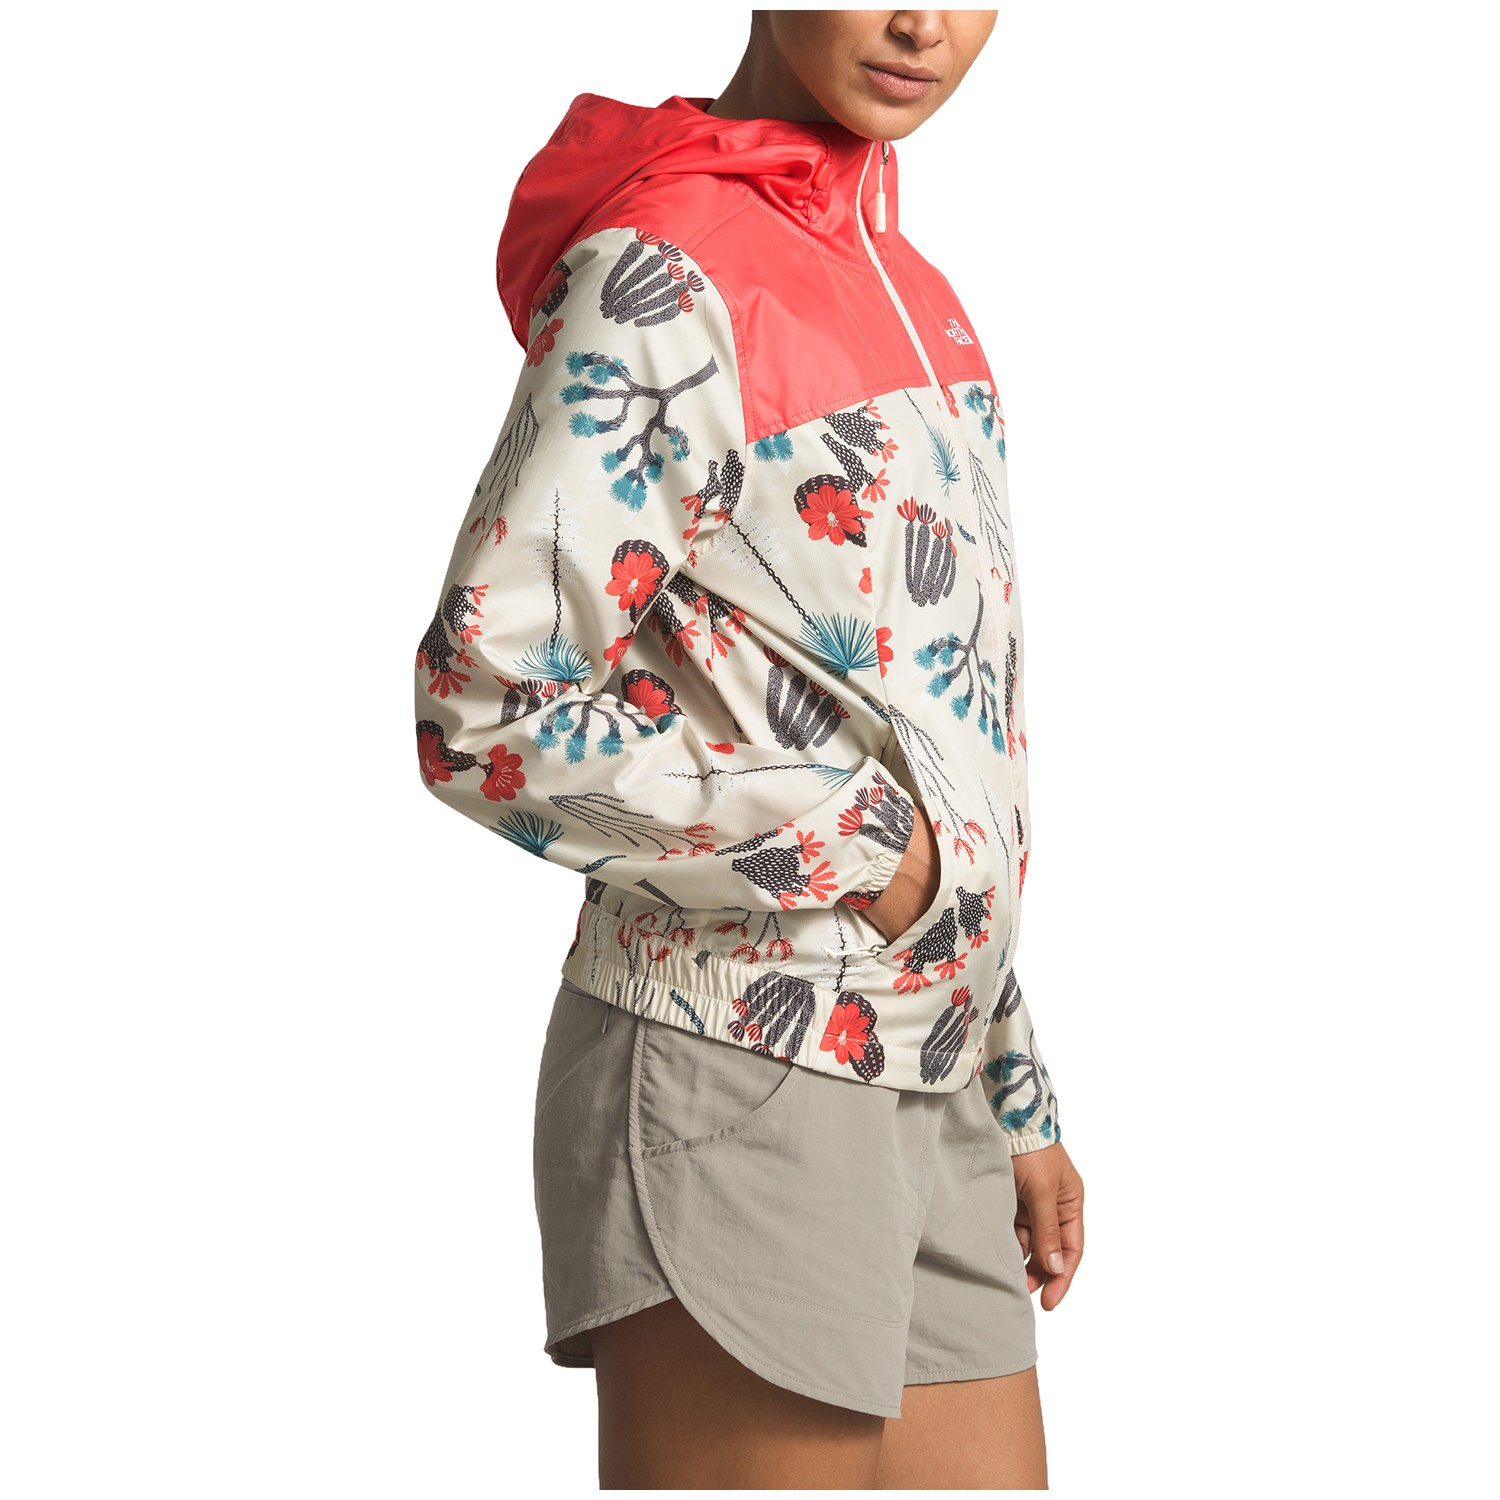 ad72450bb The North Face Printed Cyclone Windbreaker Jacket - Women's